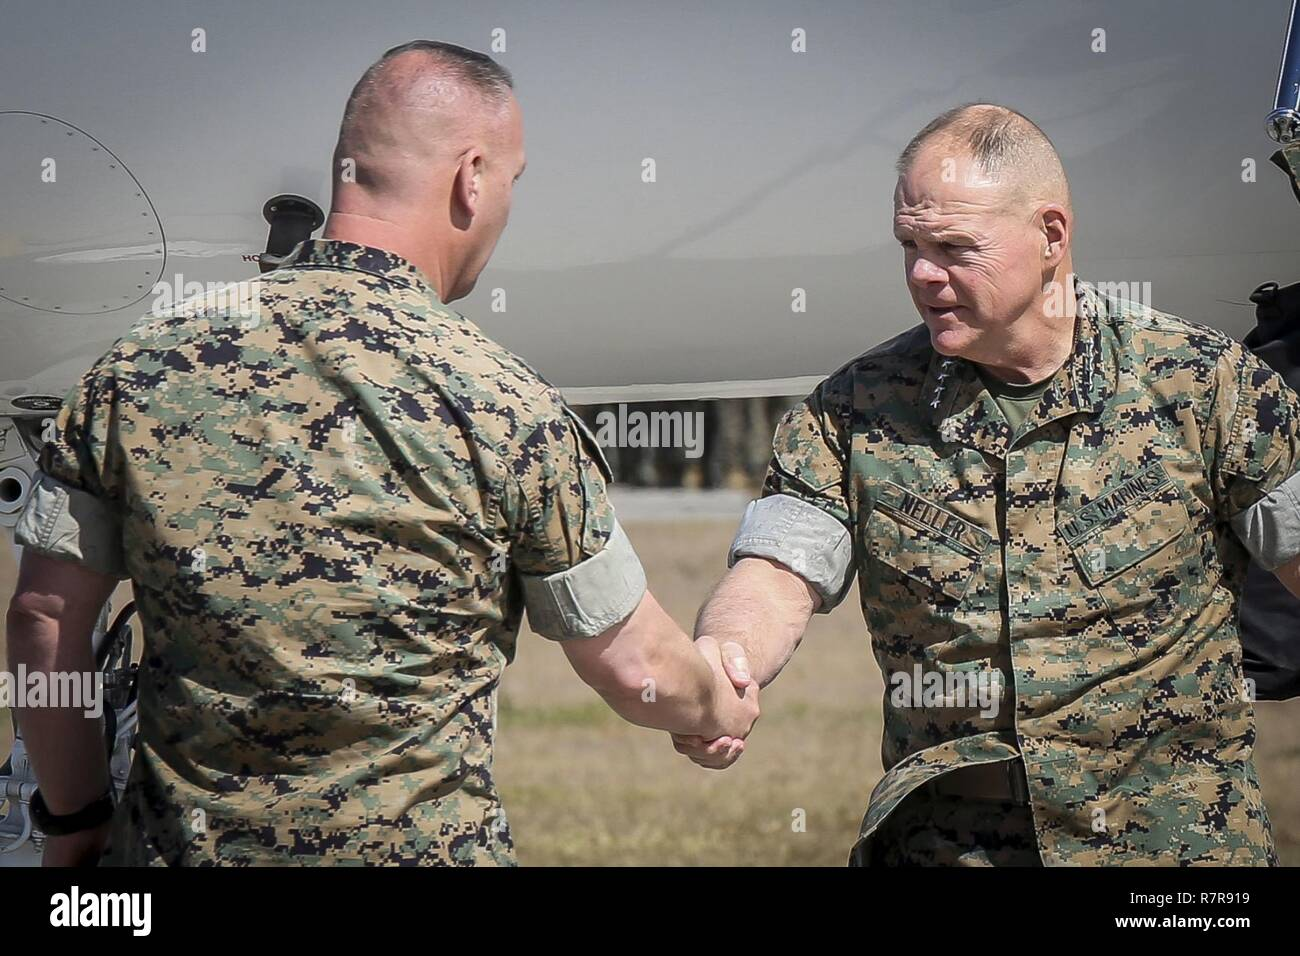 Col. Peter D. Buck greets Gen. Robert B. Neller, the 37th Commandant of the Marine Corps, during  a visit aboard Marine Corps Air Station Beaufort, March 24. Neller and Sgt. Maj. of the Marine Corps  Ronald Green, visited the air station to talk about the importance of respecting fellow Marines and  the Marine Corps' revised social media policy. Buck is the commanding officer of MCAS Beaufort. Stock Photo